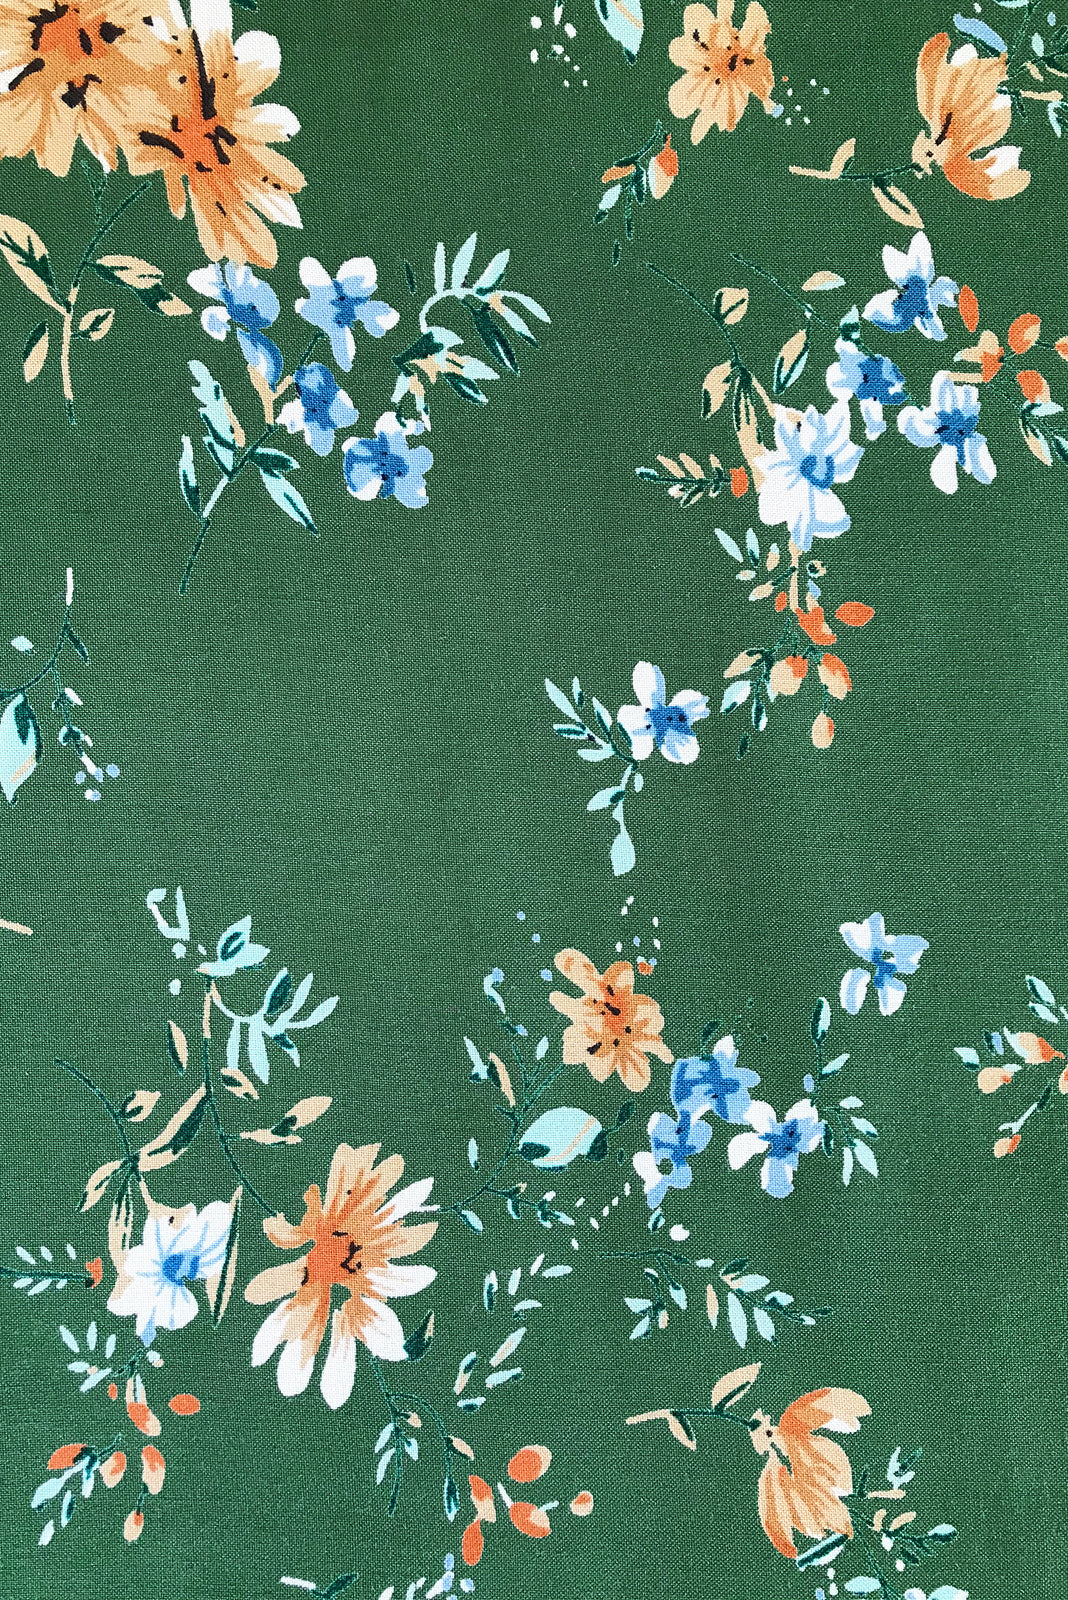 Fabric Swatch of Primrose Springtime Green Dress featuring 100% rayon in green base with classic floral print.